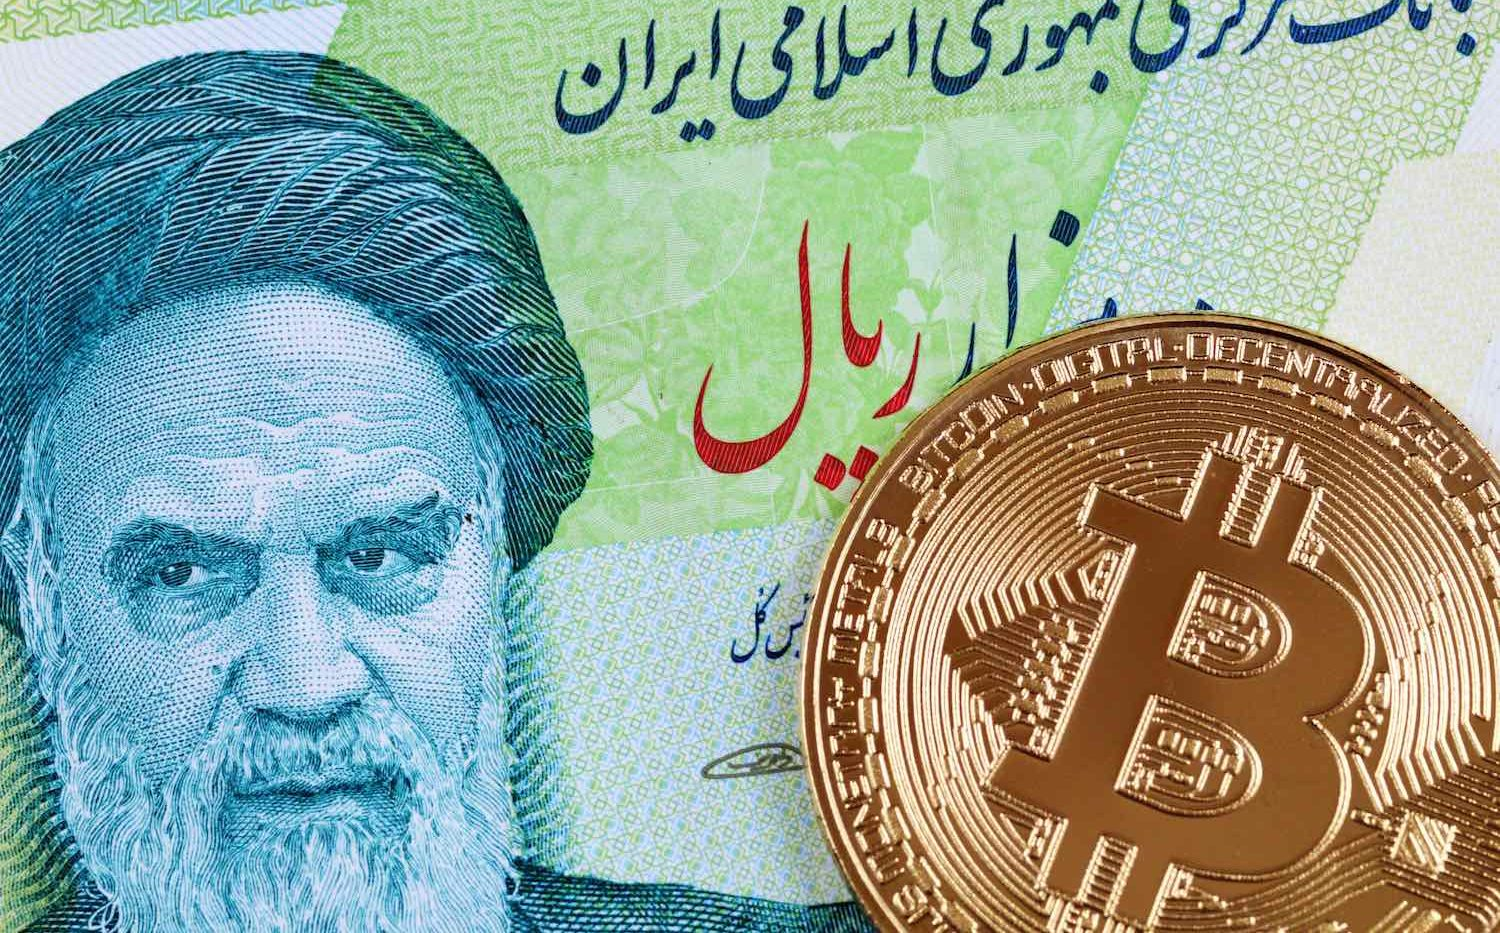 US Lawmakers Seek Sanctions Against Iran's Cryptocurrency Efforts - CoinDesk